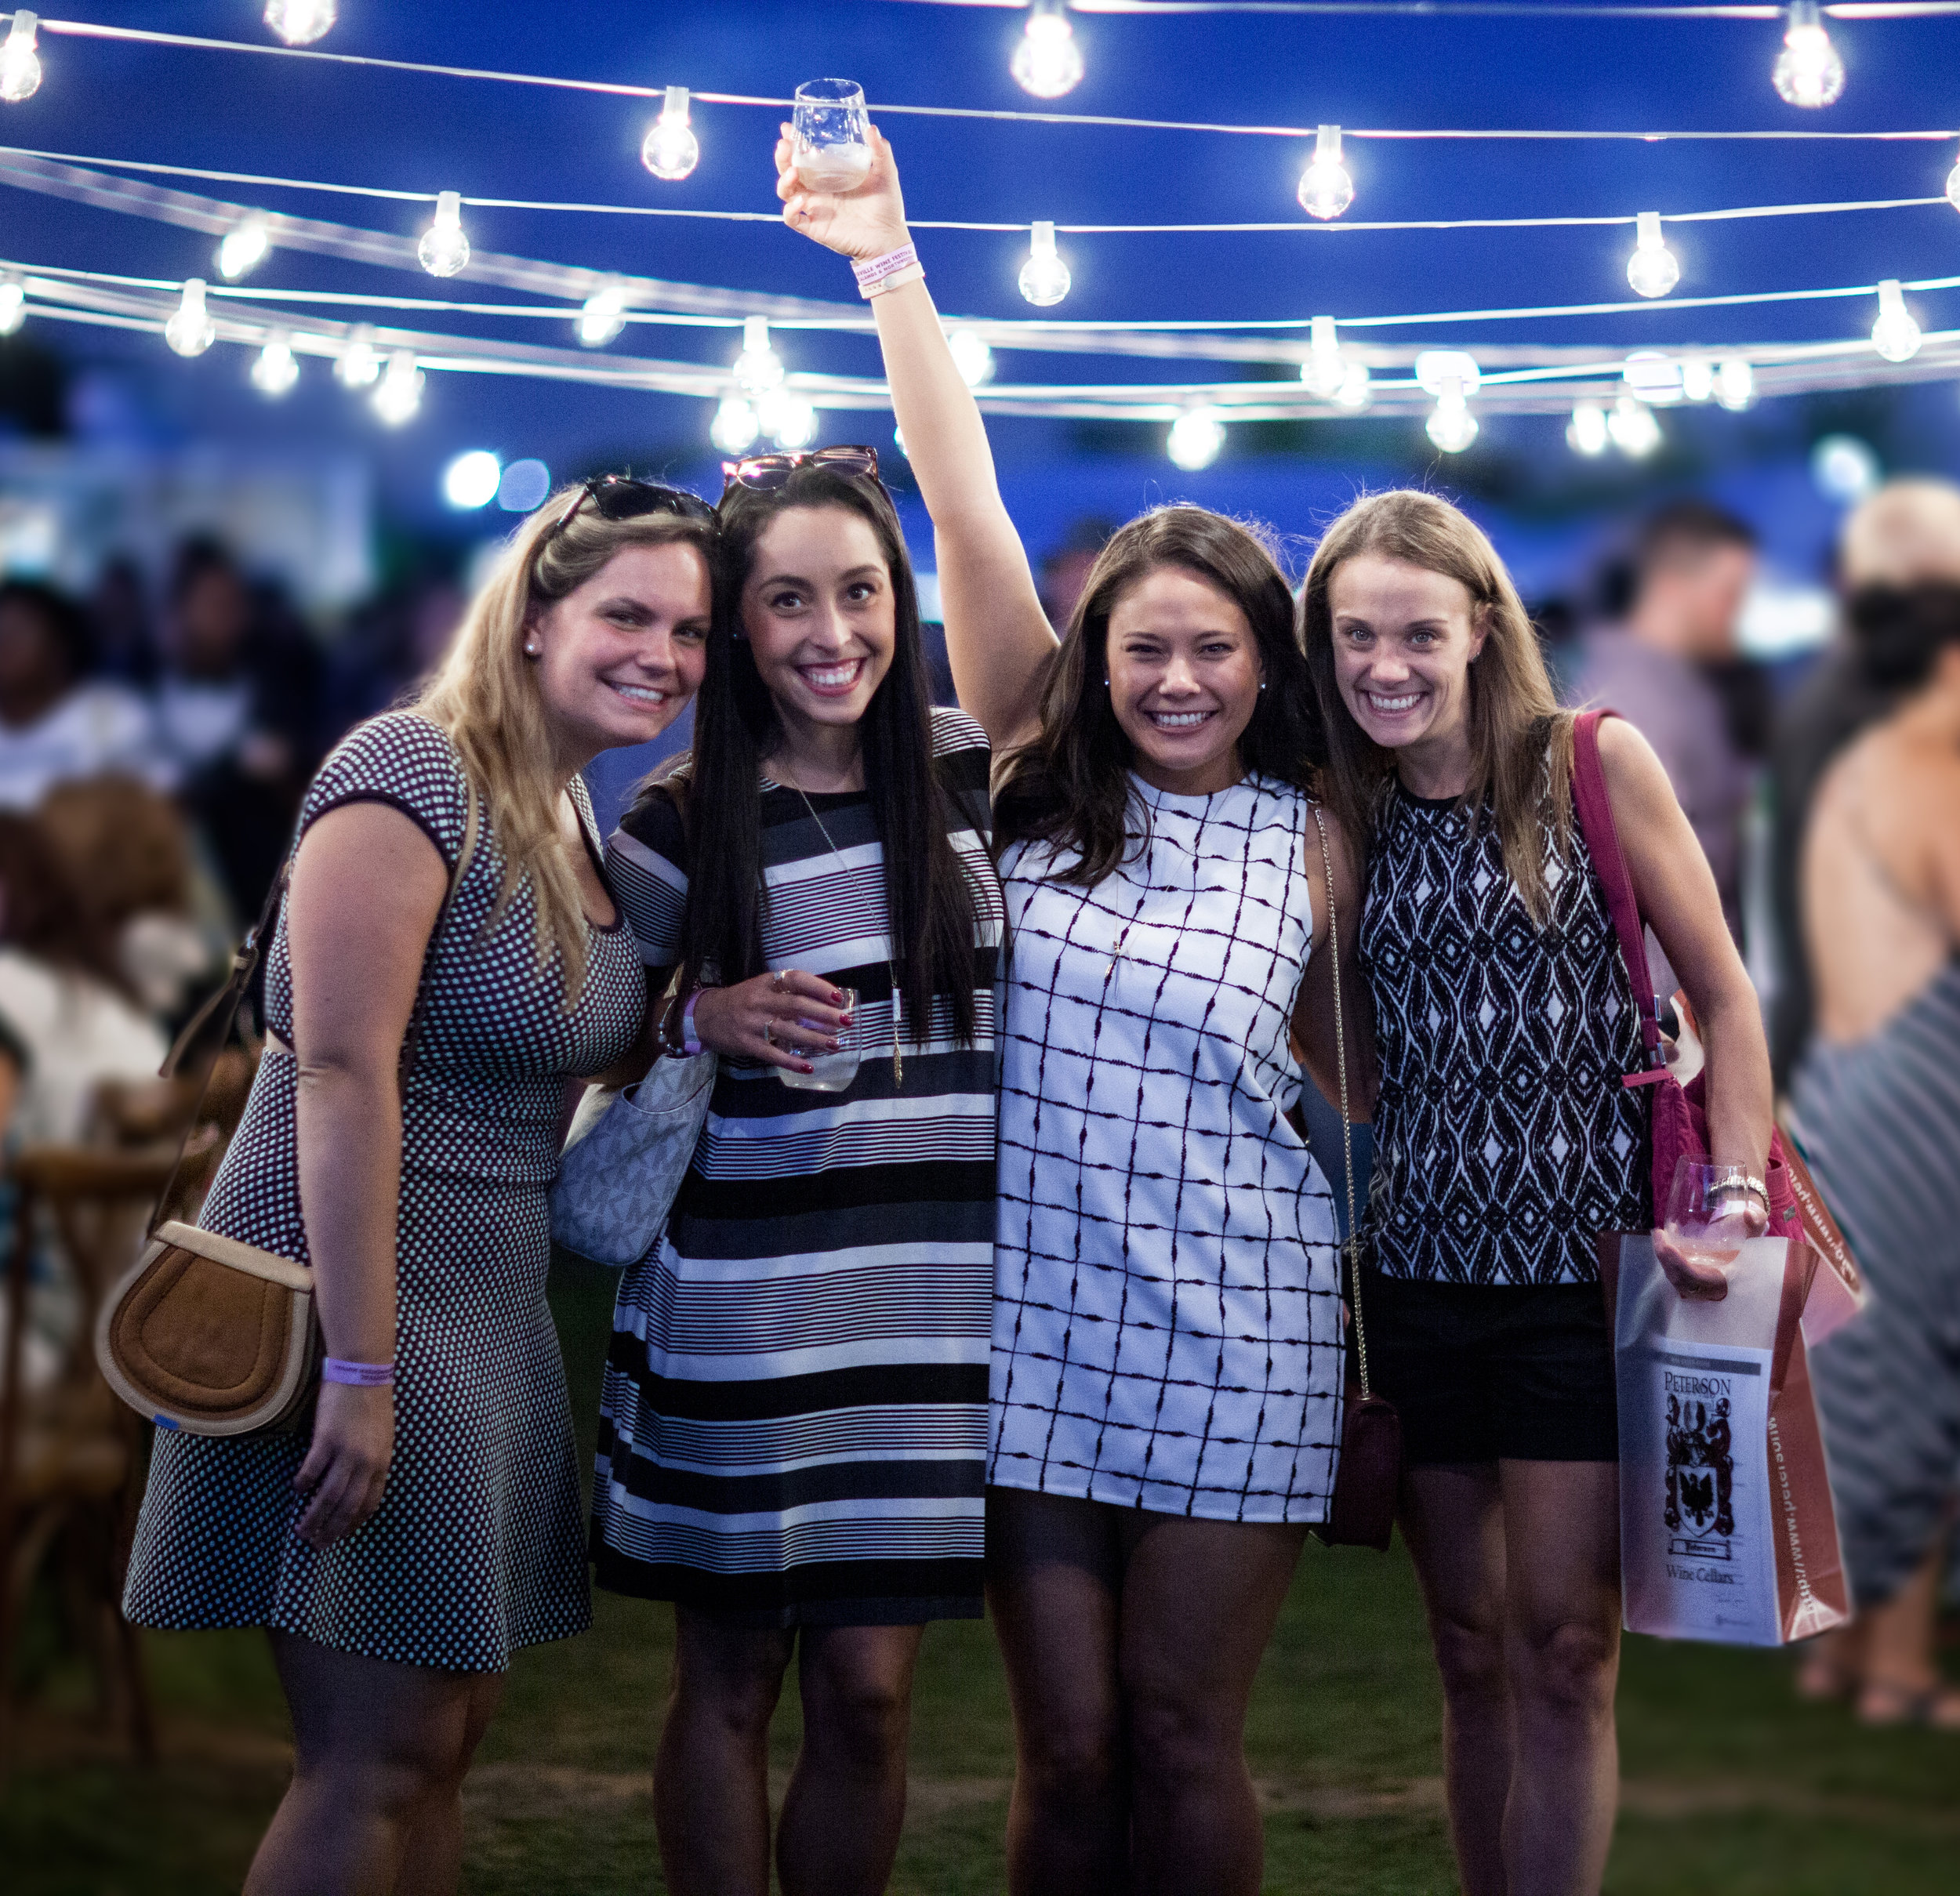 EVENT PHOTOGRAPHY & EVENT BRANDING  for Naperville Wine Festival.